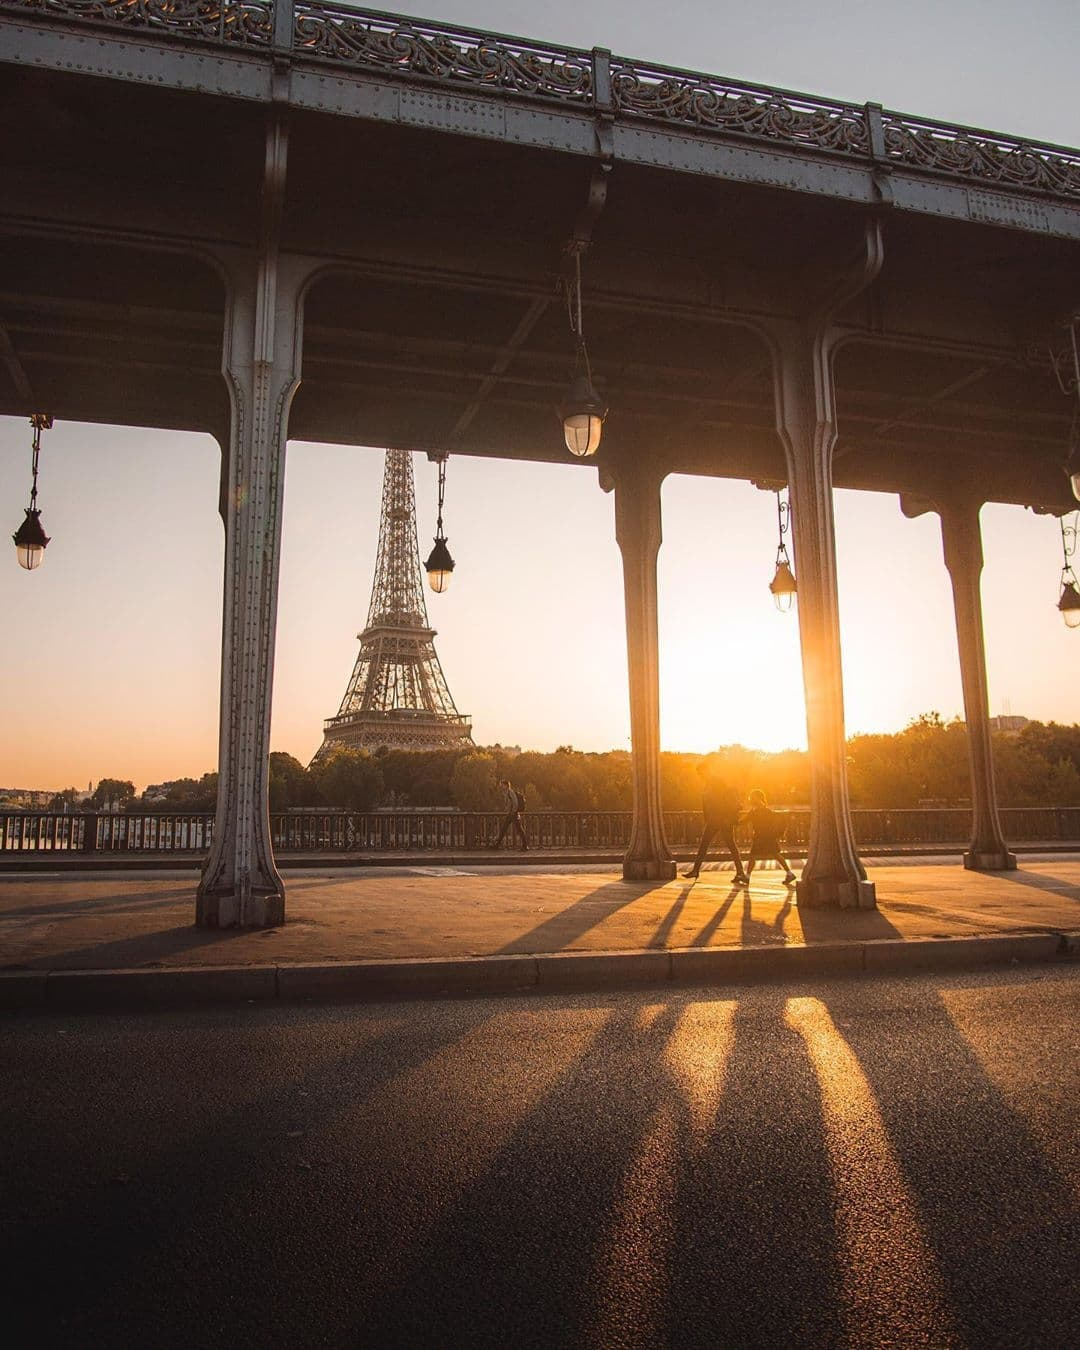 View of the Eiffel Tower from Pont Bir-Hakeim during golden hour